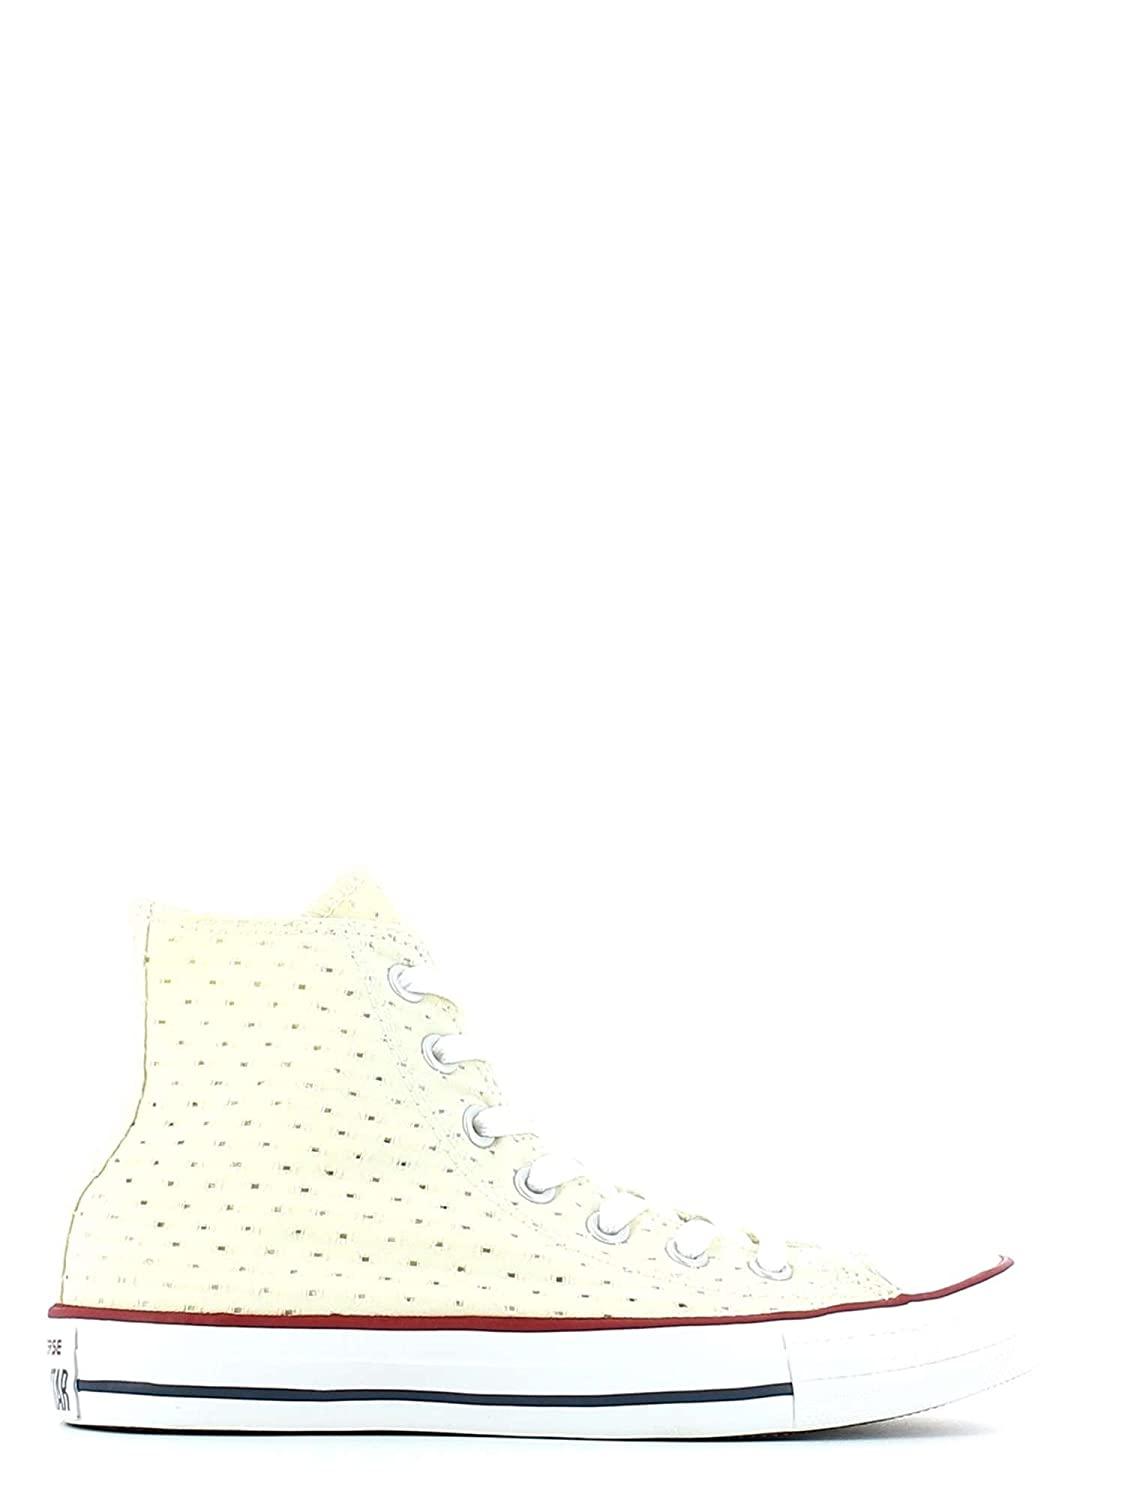 Converse Damen Schuhe Chucks All Star Chuck Taylor CT Hi Hellgelb Sneakers Gelb